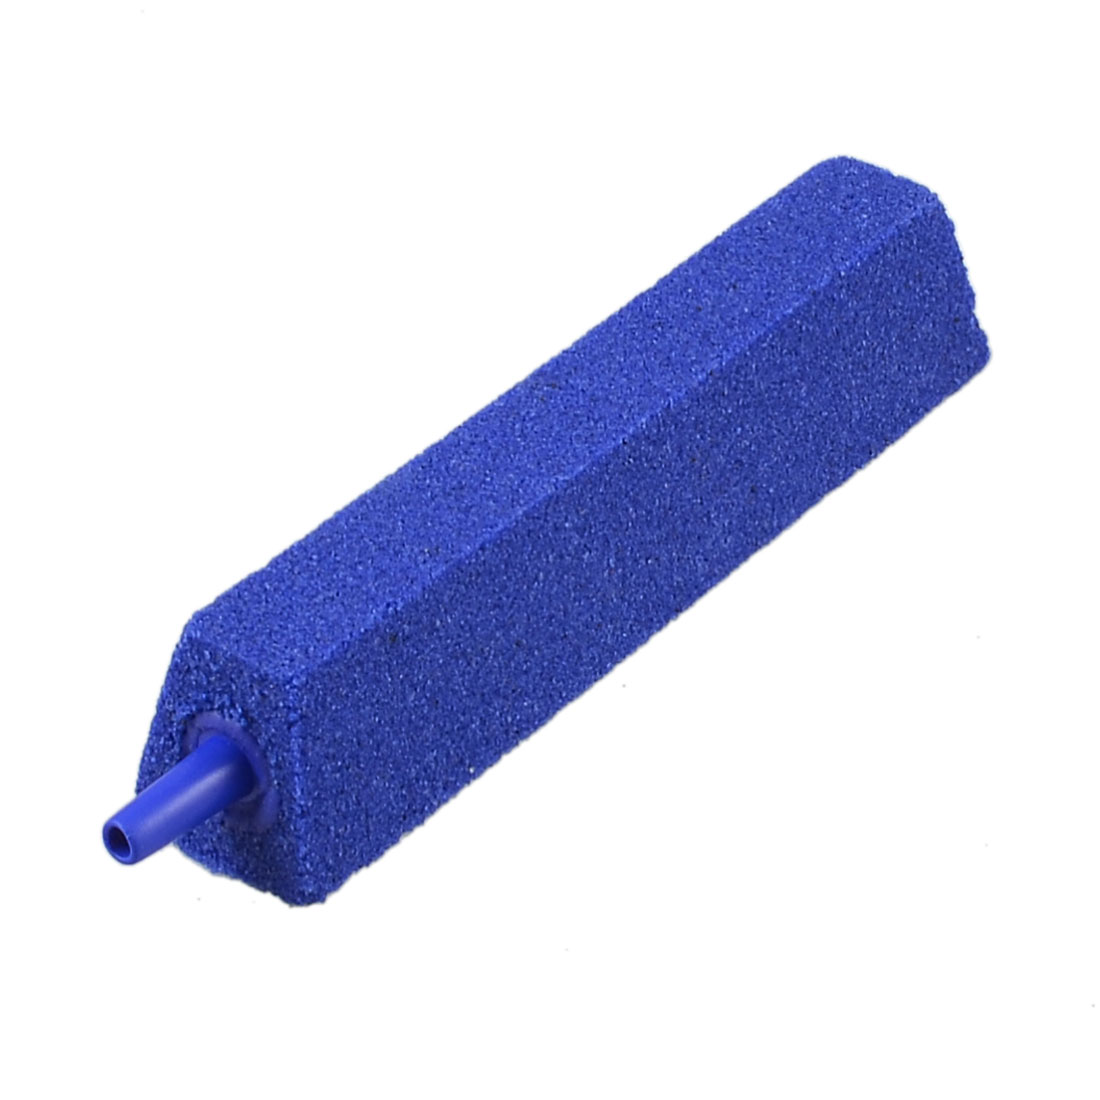 Aquarium Fish Tank Blue Mineral Bubbles Airstone Air Stone Bar 100mm Long